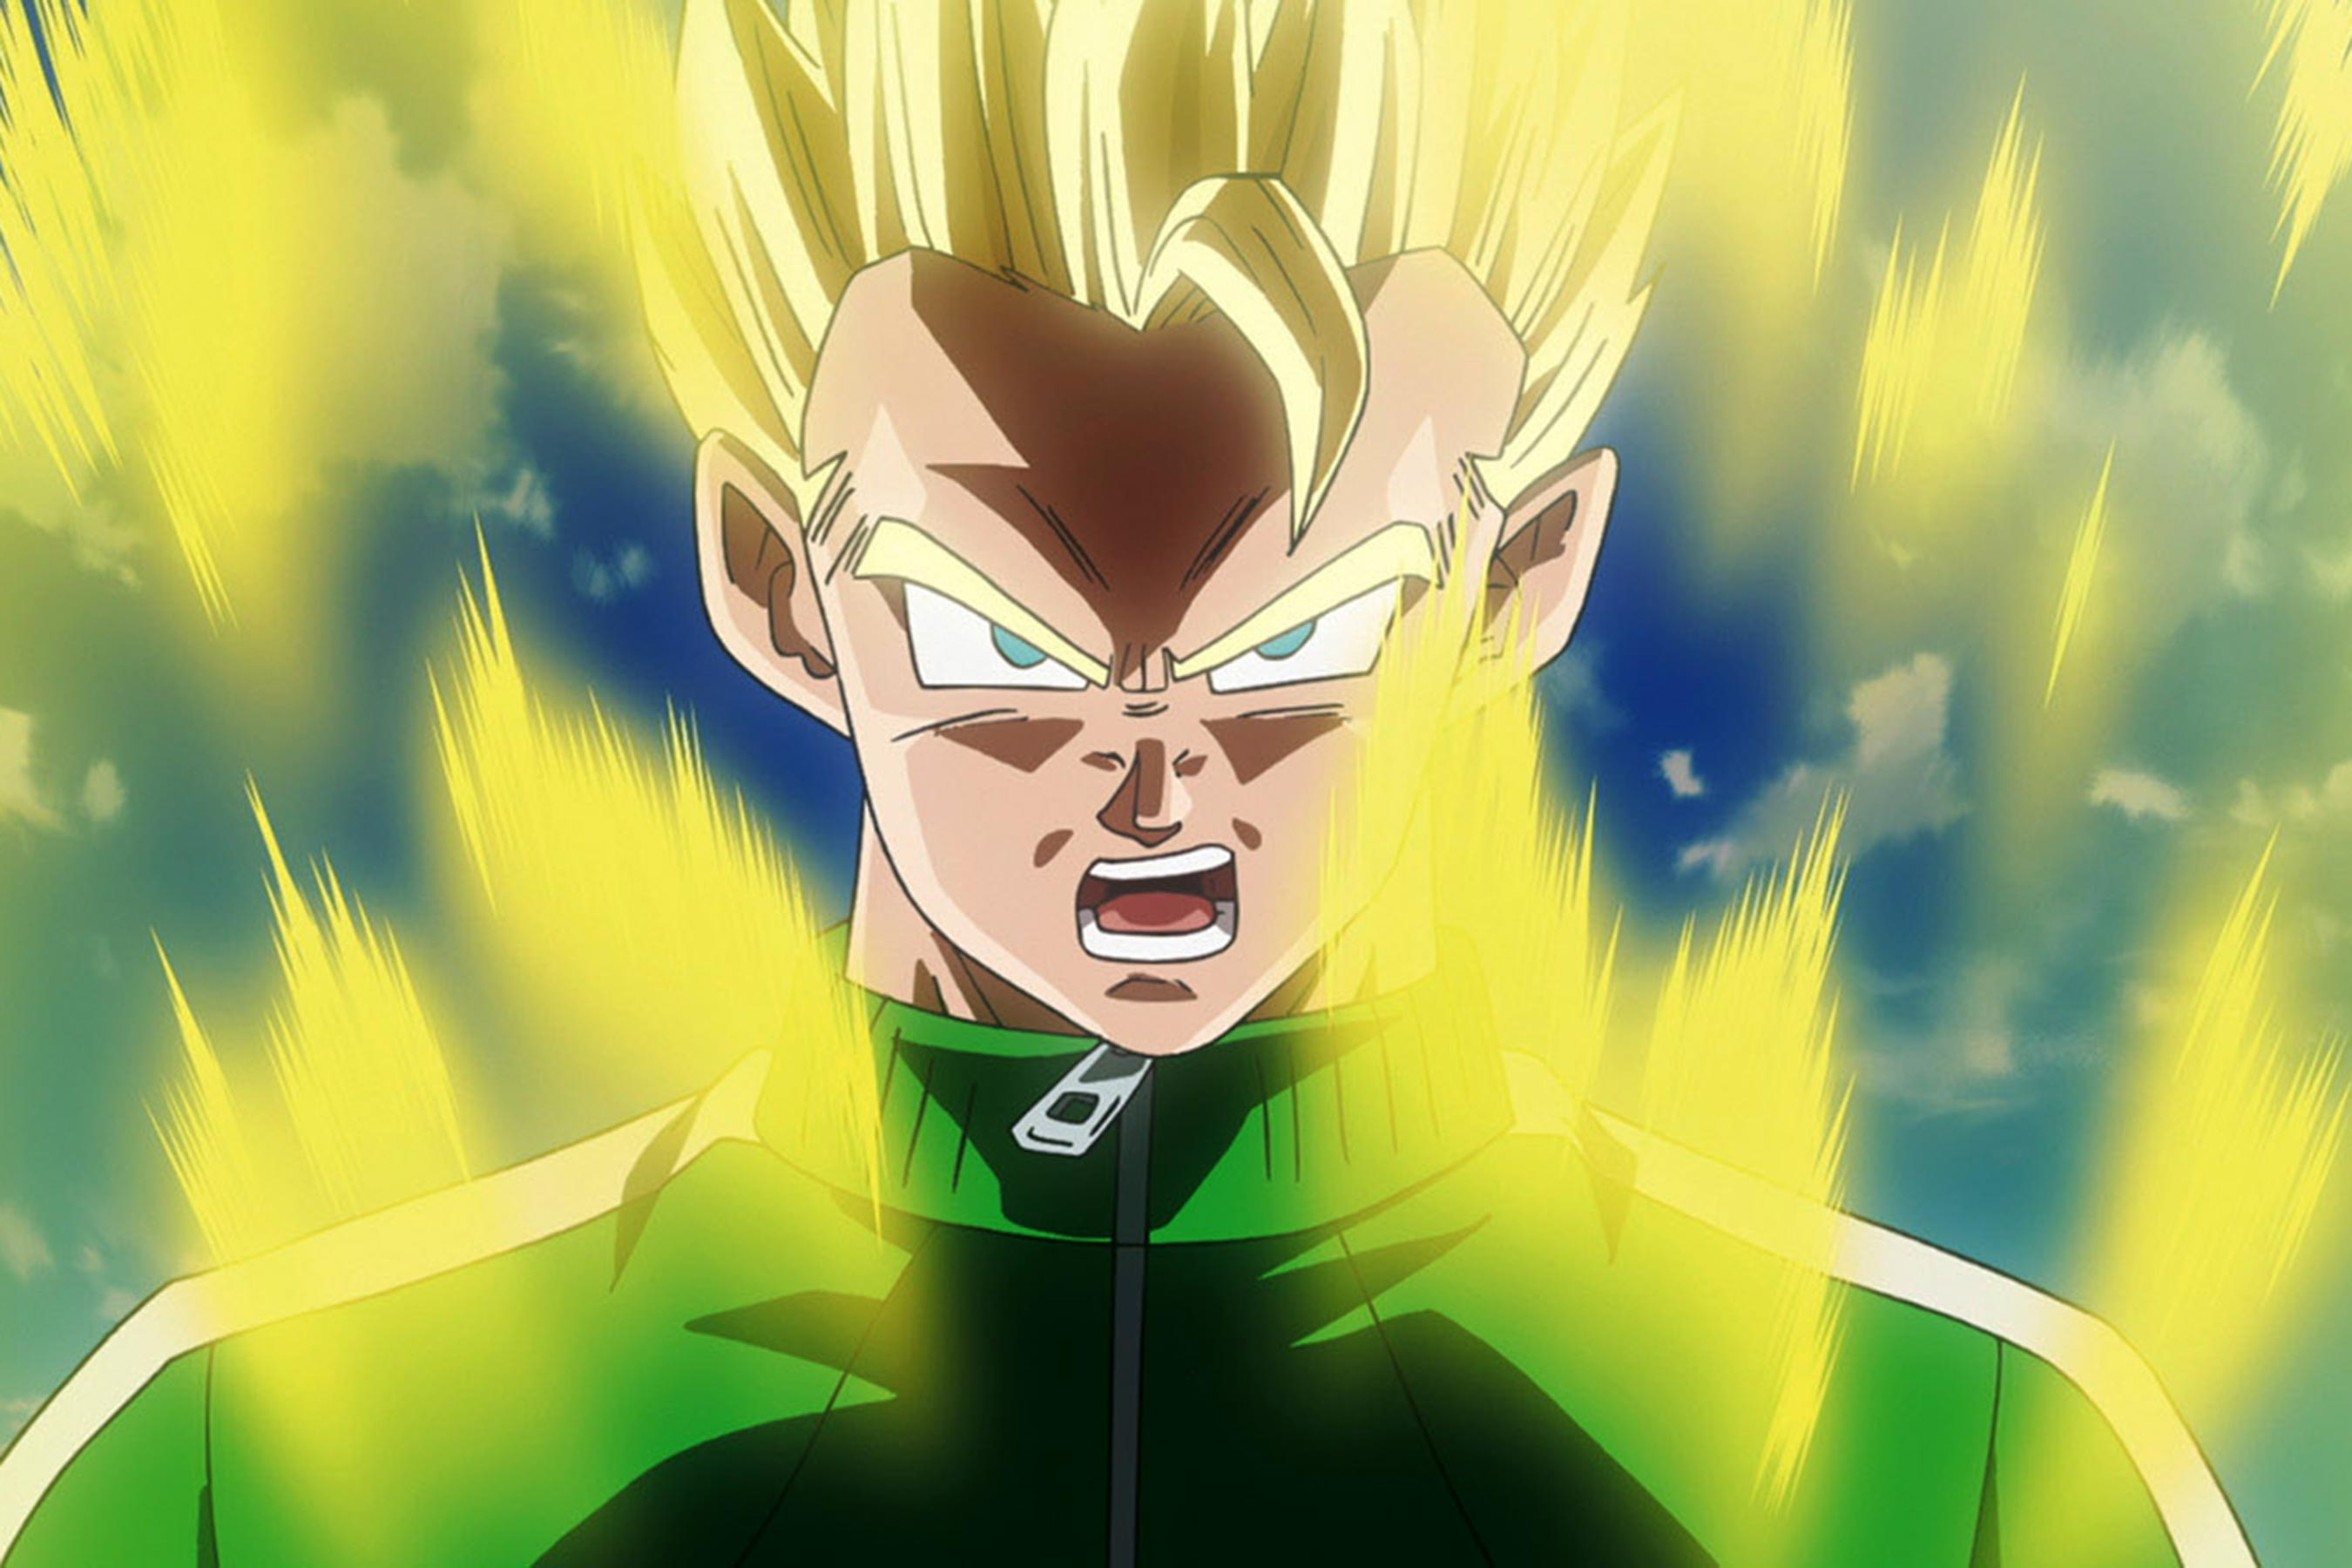 Remastered Dragon Ball Z movies coming to theaters this fall